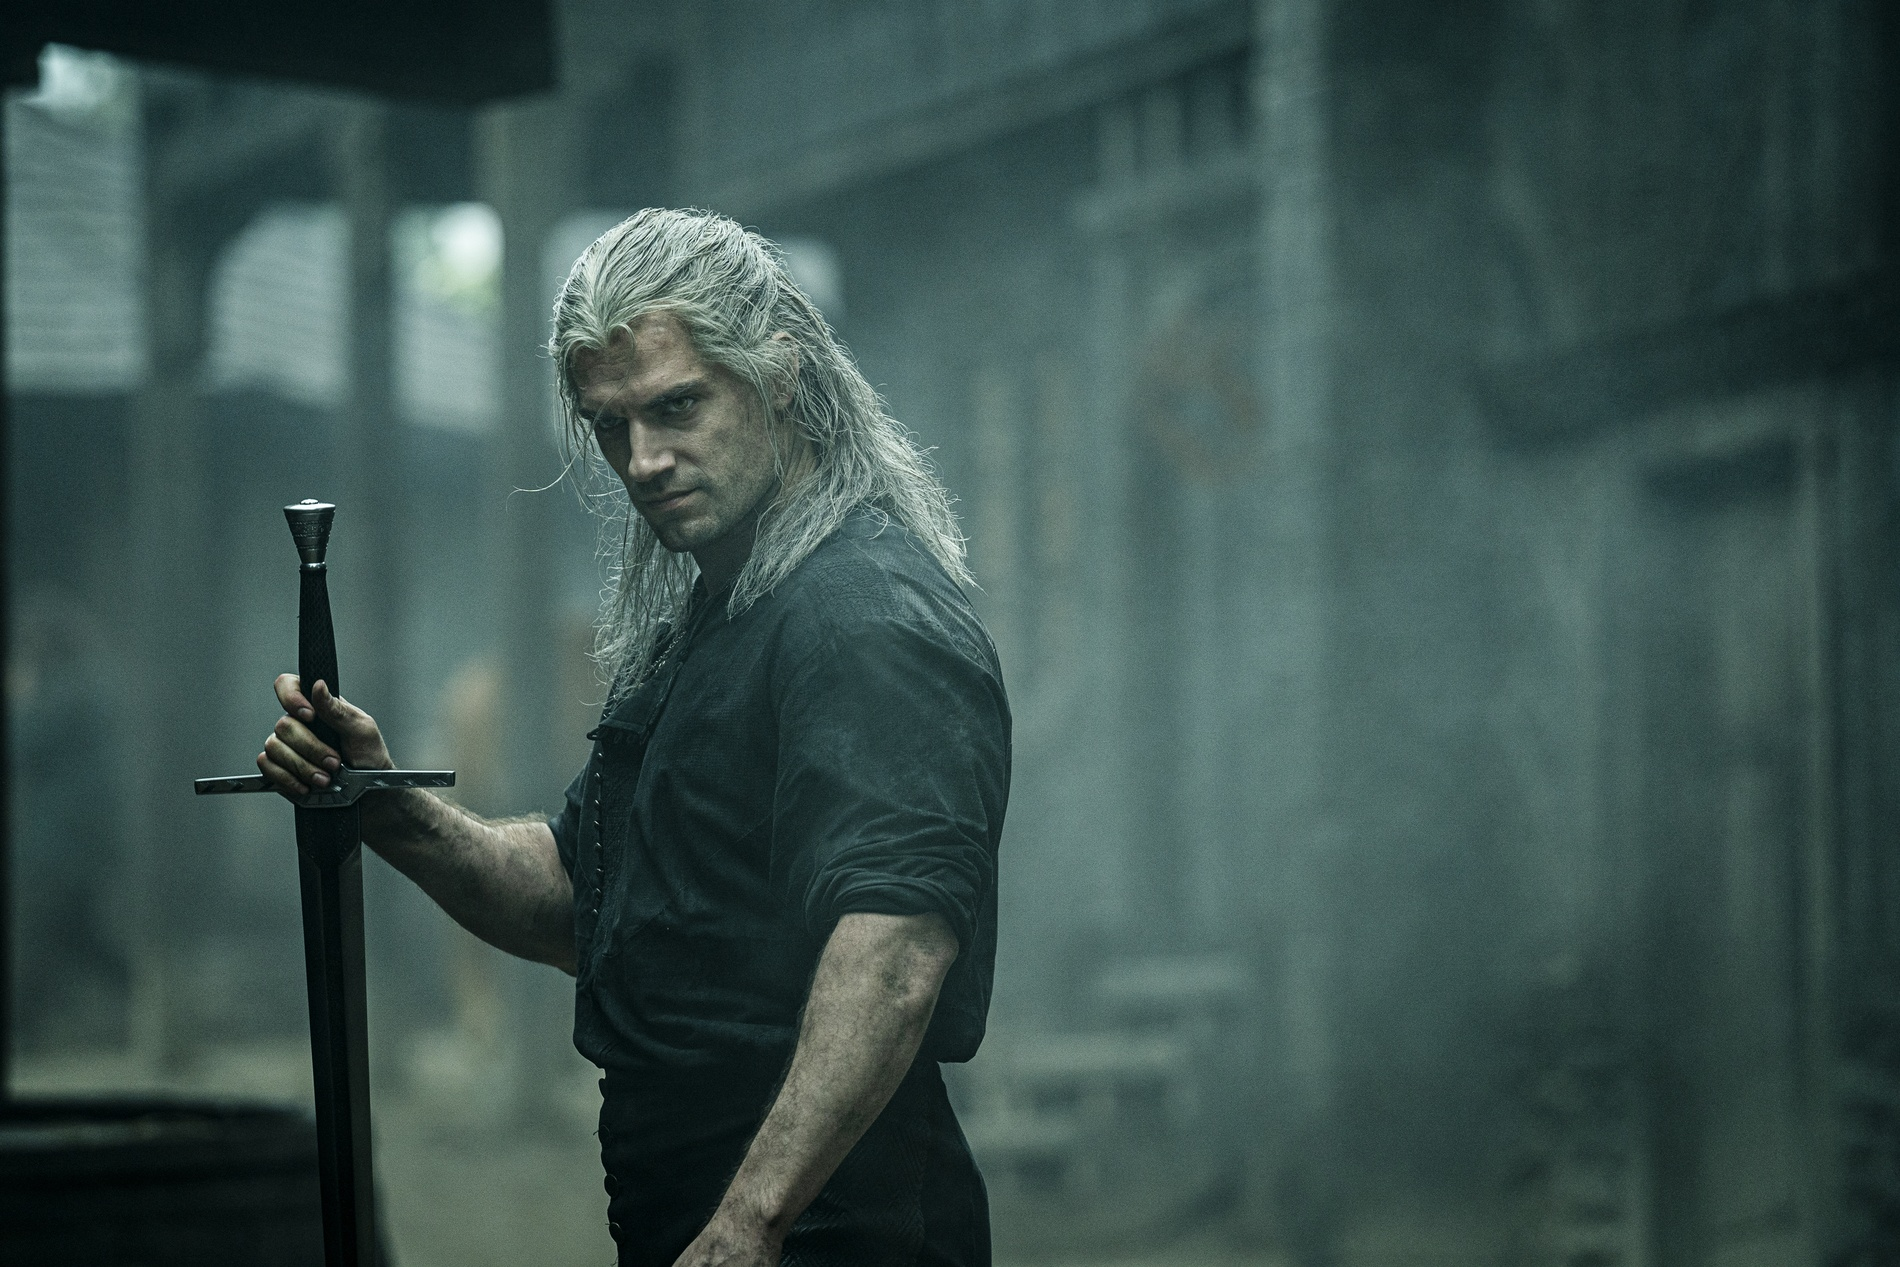 Netflix's 'The Witcher' Showrunner Explains How to Get the Top Gig in TV